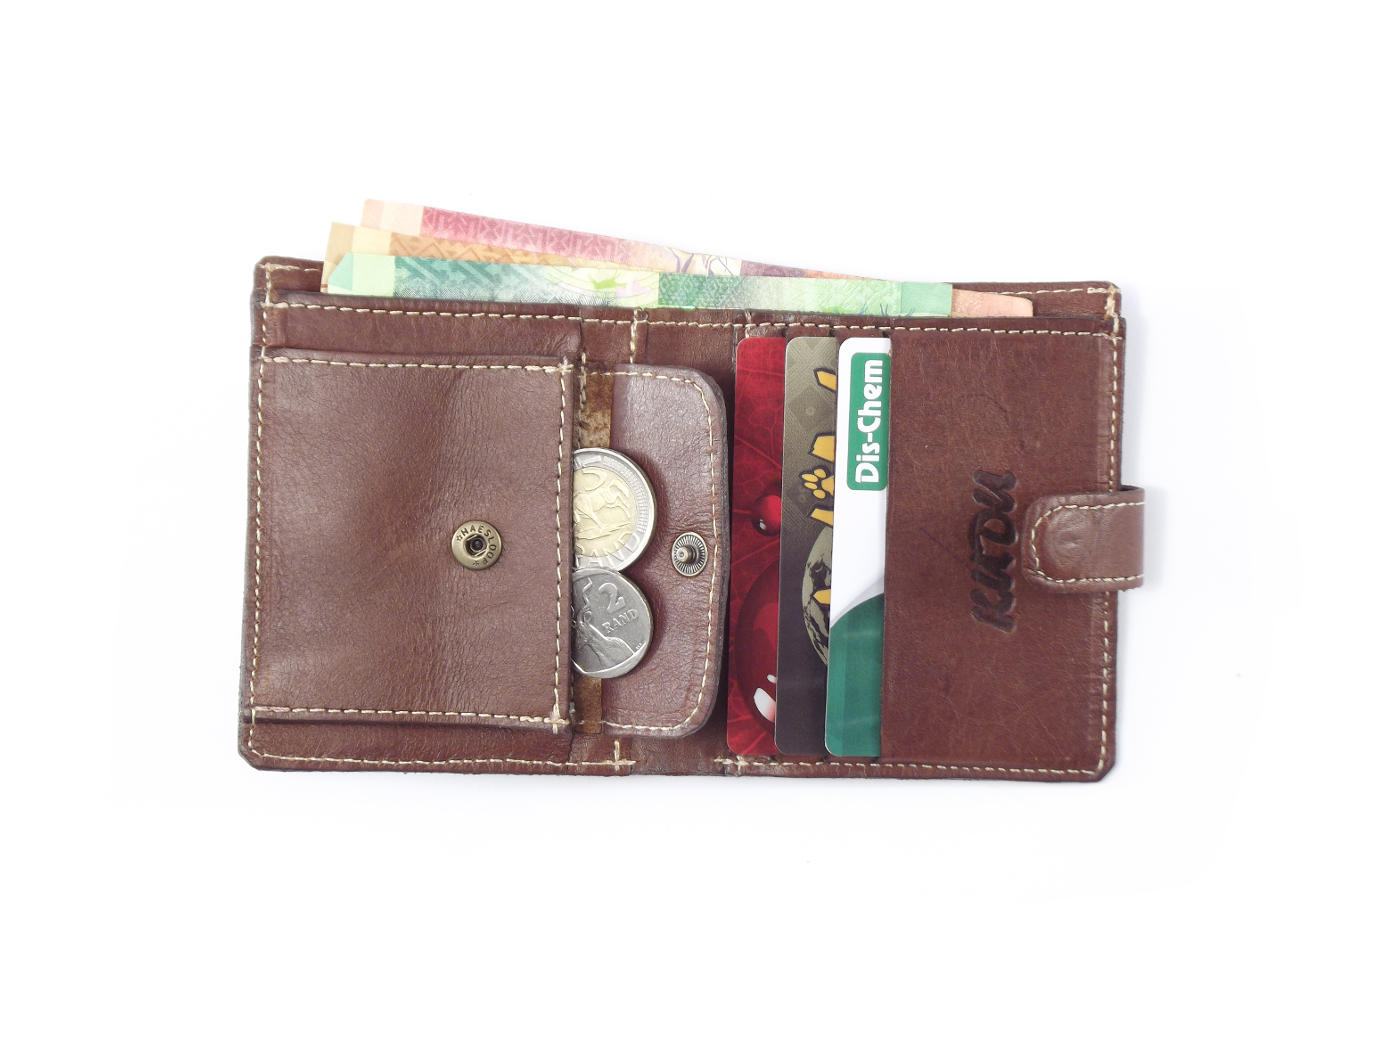 Genuine leather business credit card wallet for men | Der Lederhandler